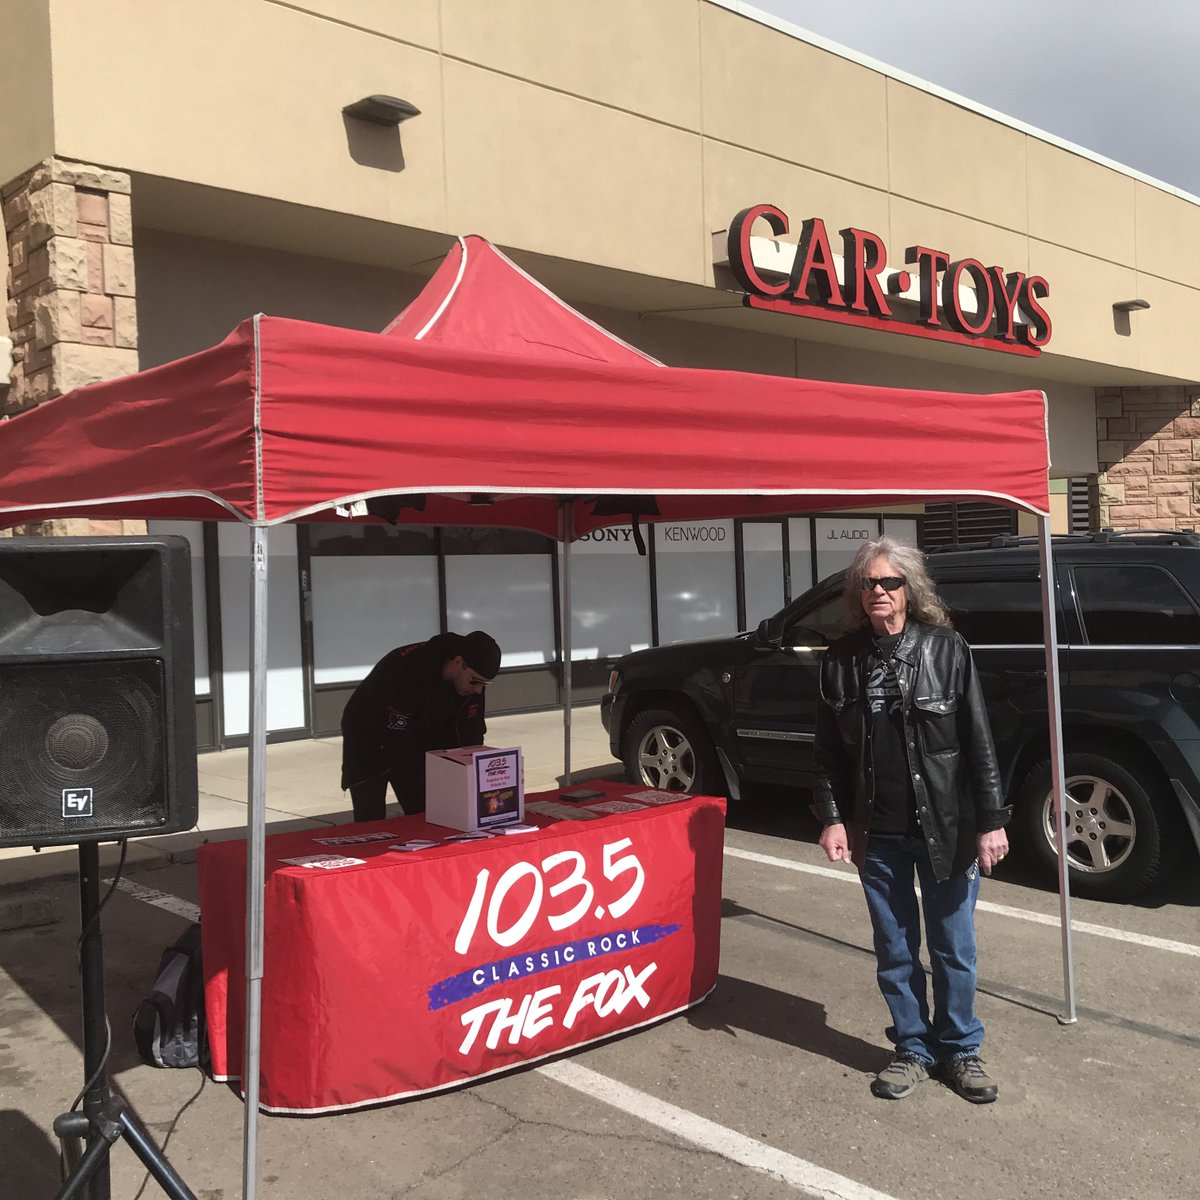 1035thefox On Twitter We Re Here At Cartoys On 30th In Boulder